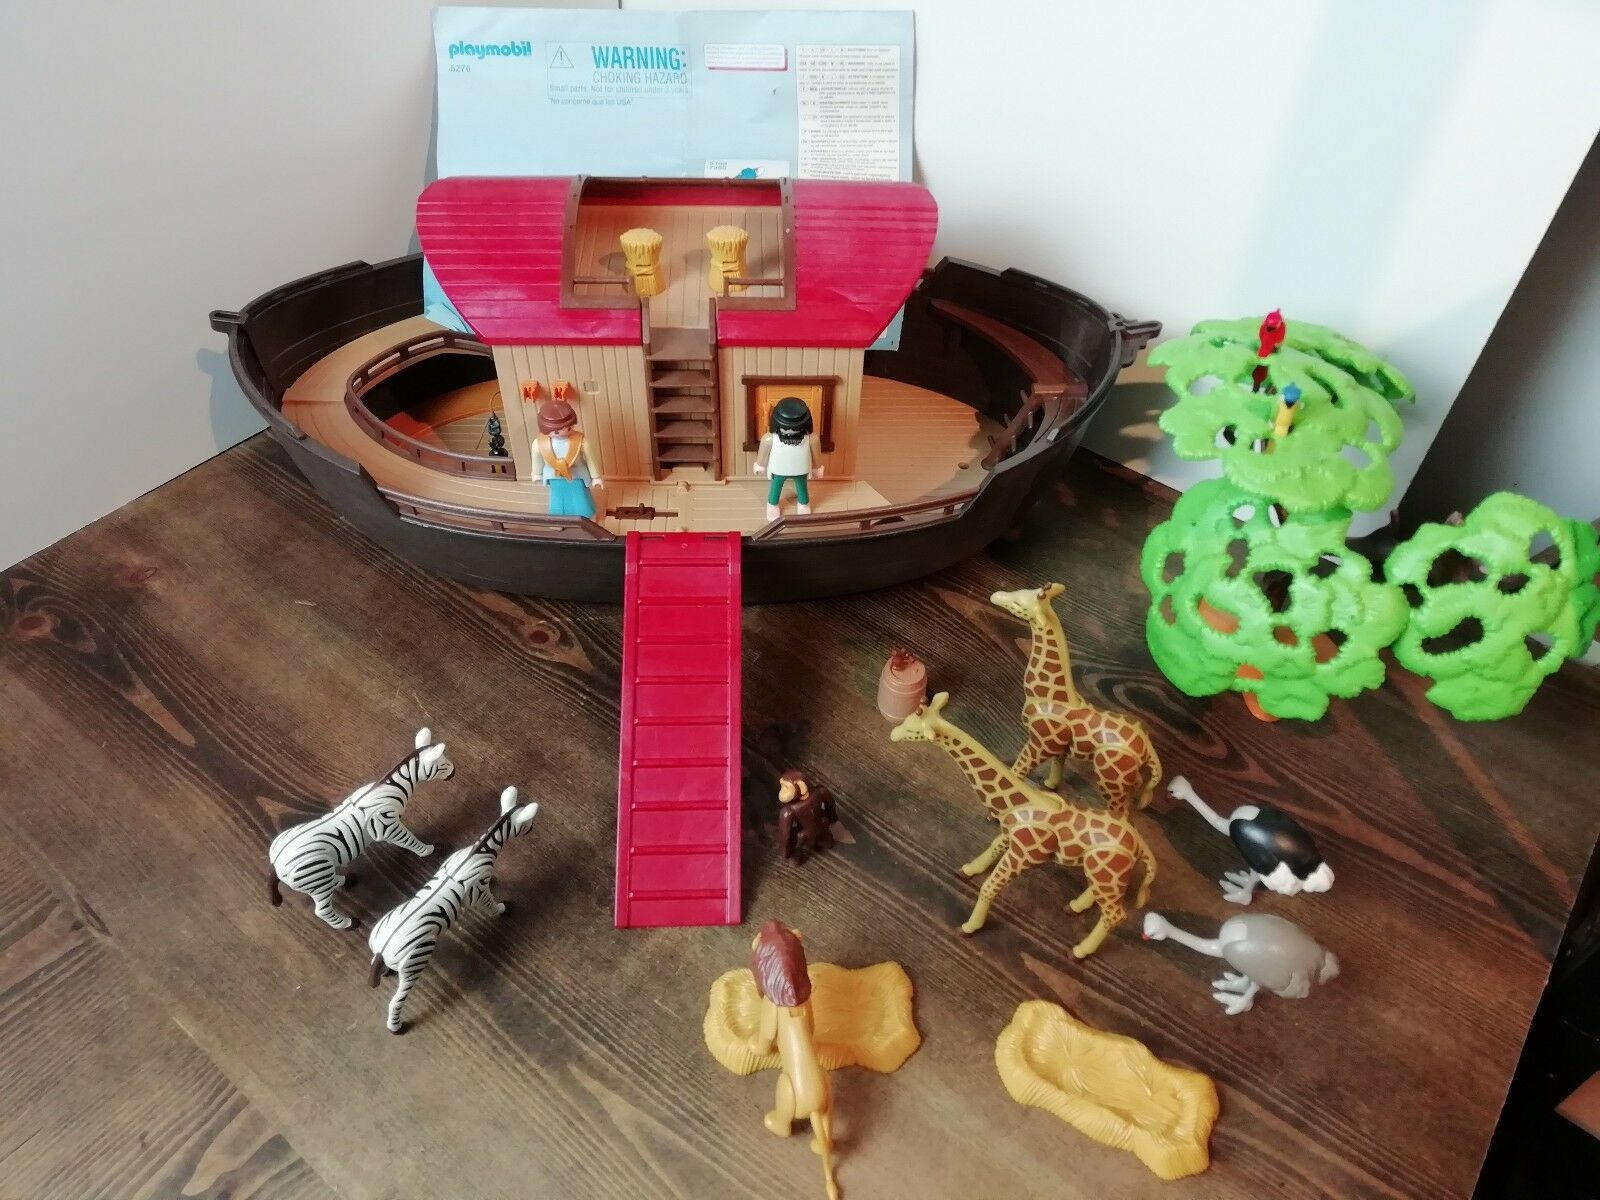 Playmobil 5276 NOAHS ARK With Animals Figures Plus Accessories